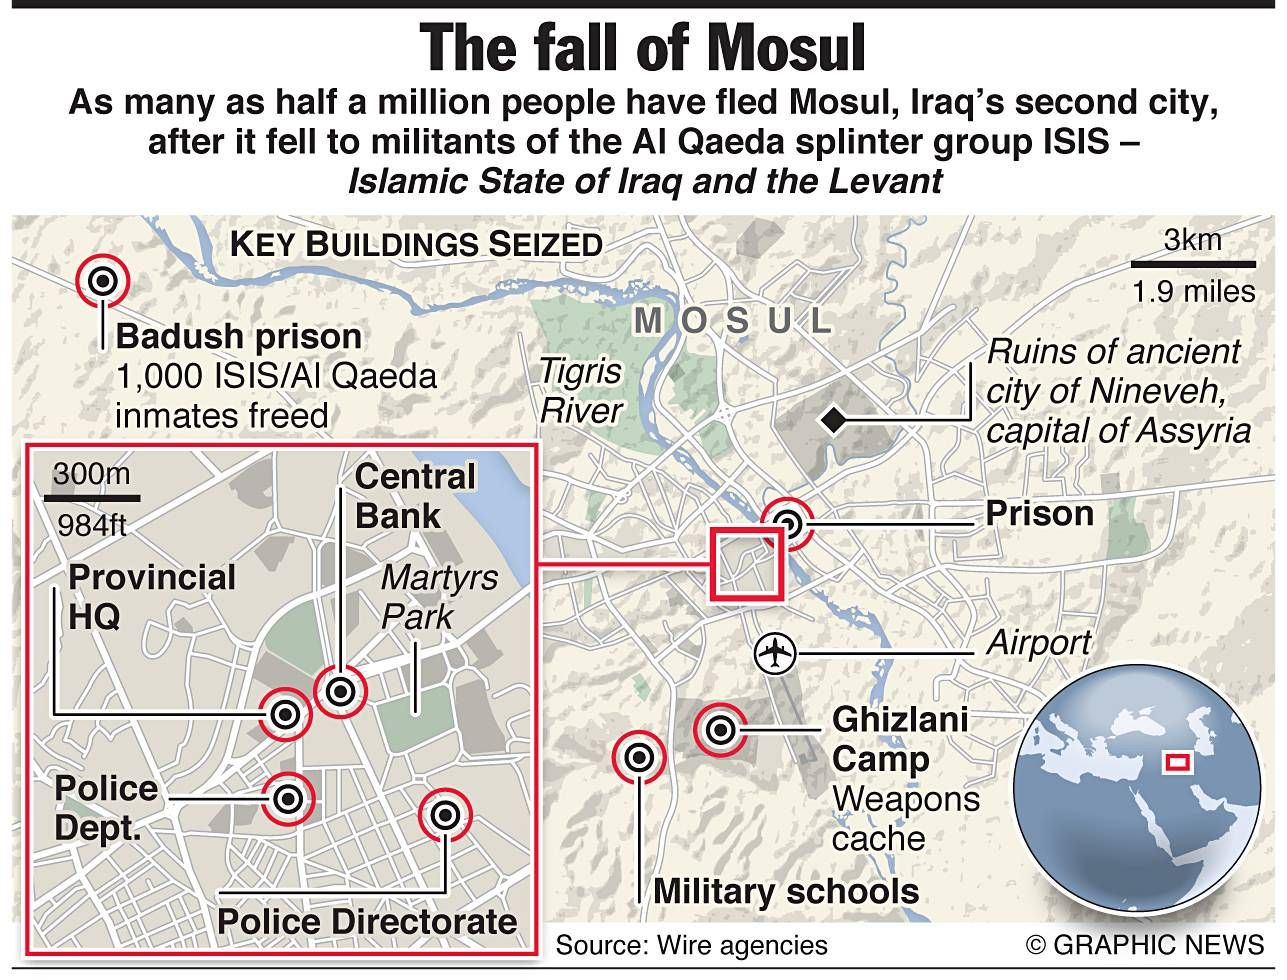 map of mosul showing location of ruins of Nineveh Info graphics